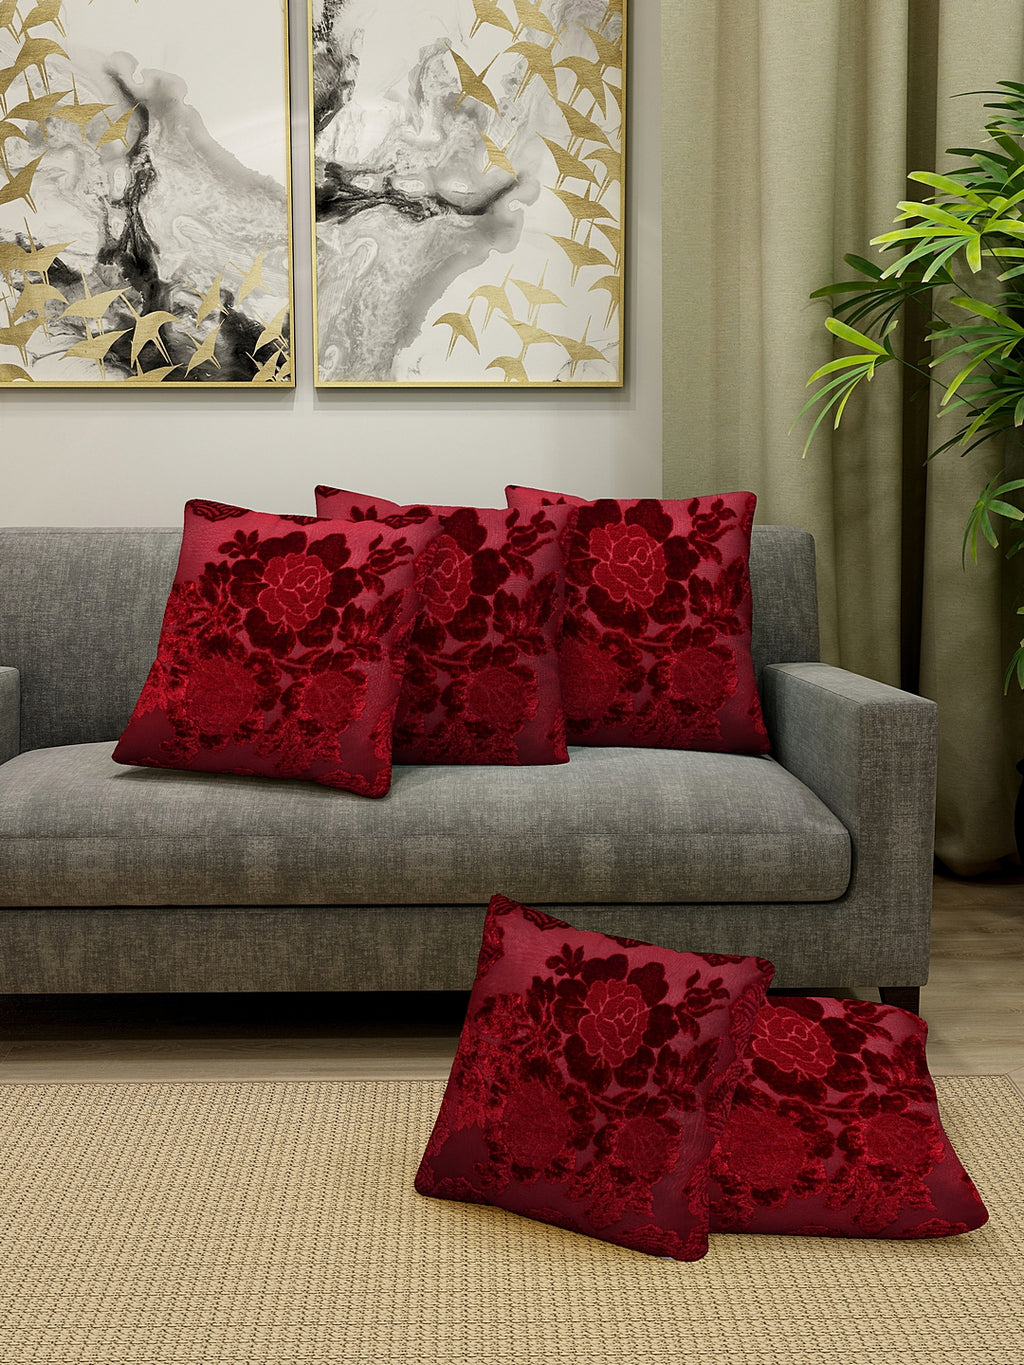 Detec™ Hosta Floral Embossed Printed Cushion Cover 16 X 16 Inches (Set of 5)